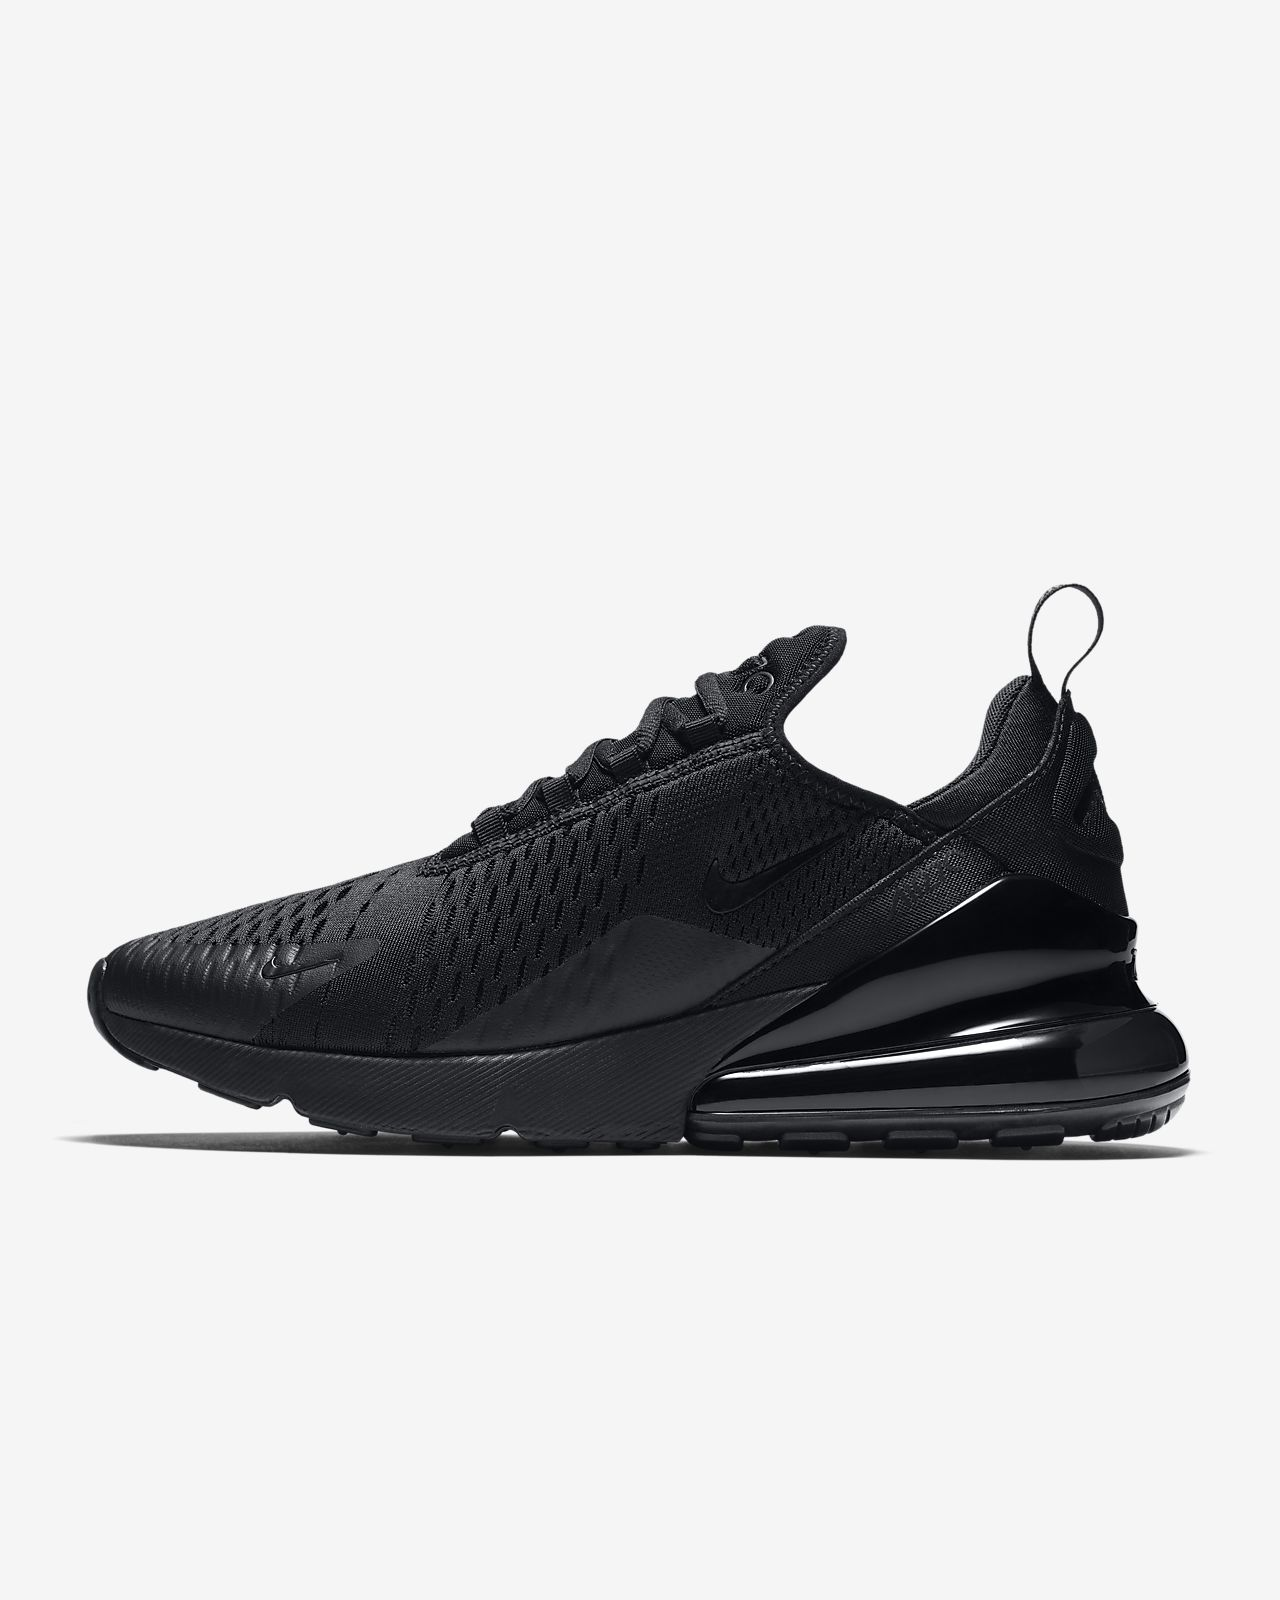 931b313665b Nike Air Max 270 Men s Shoe. Nike.com CA